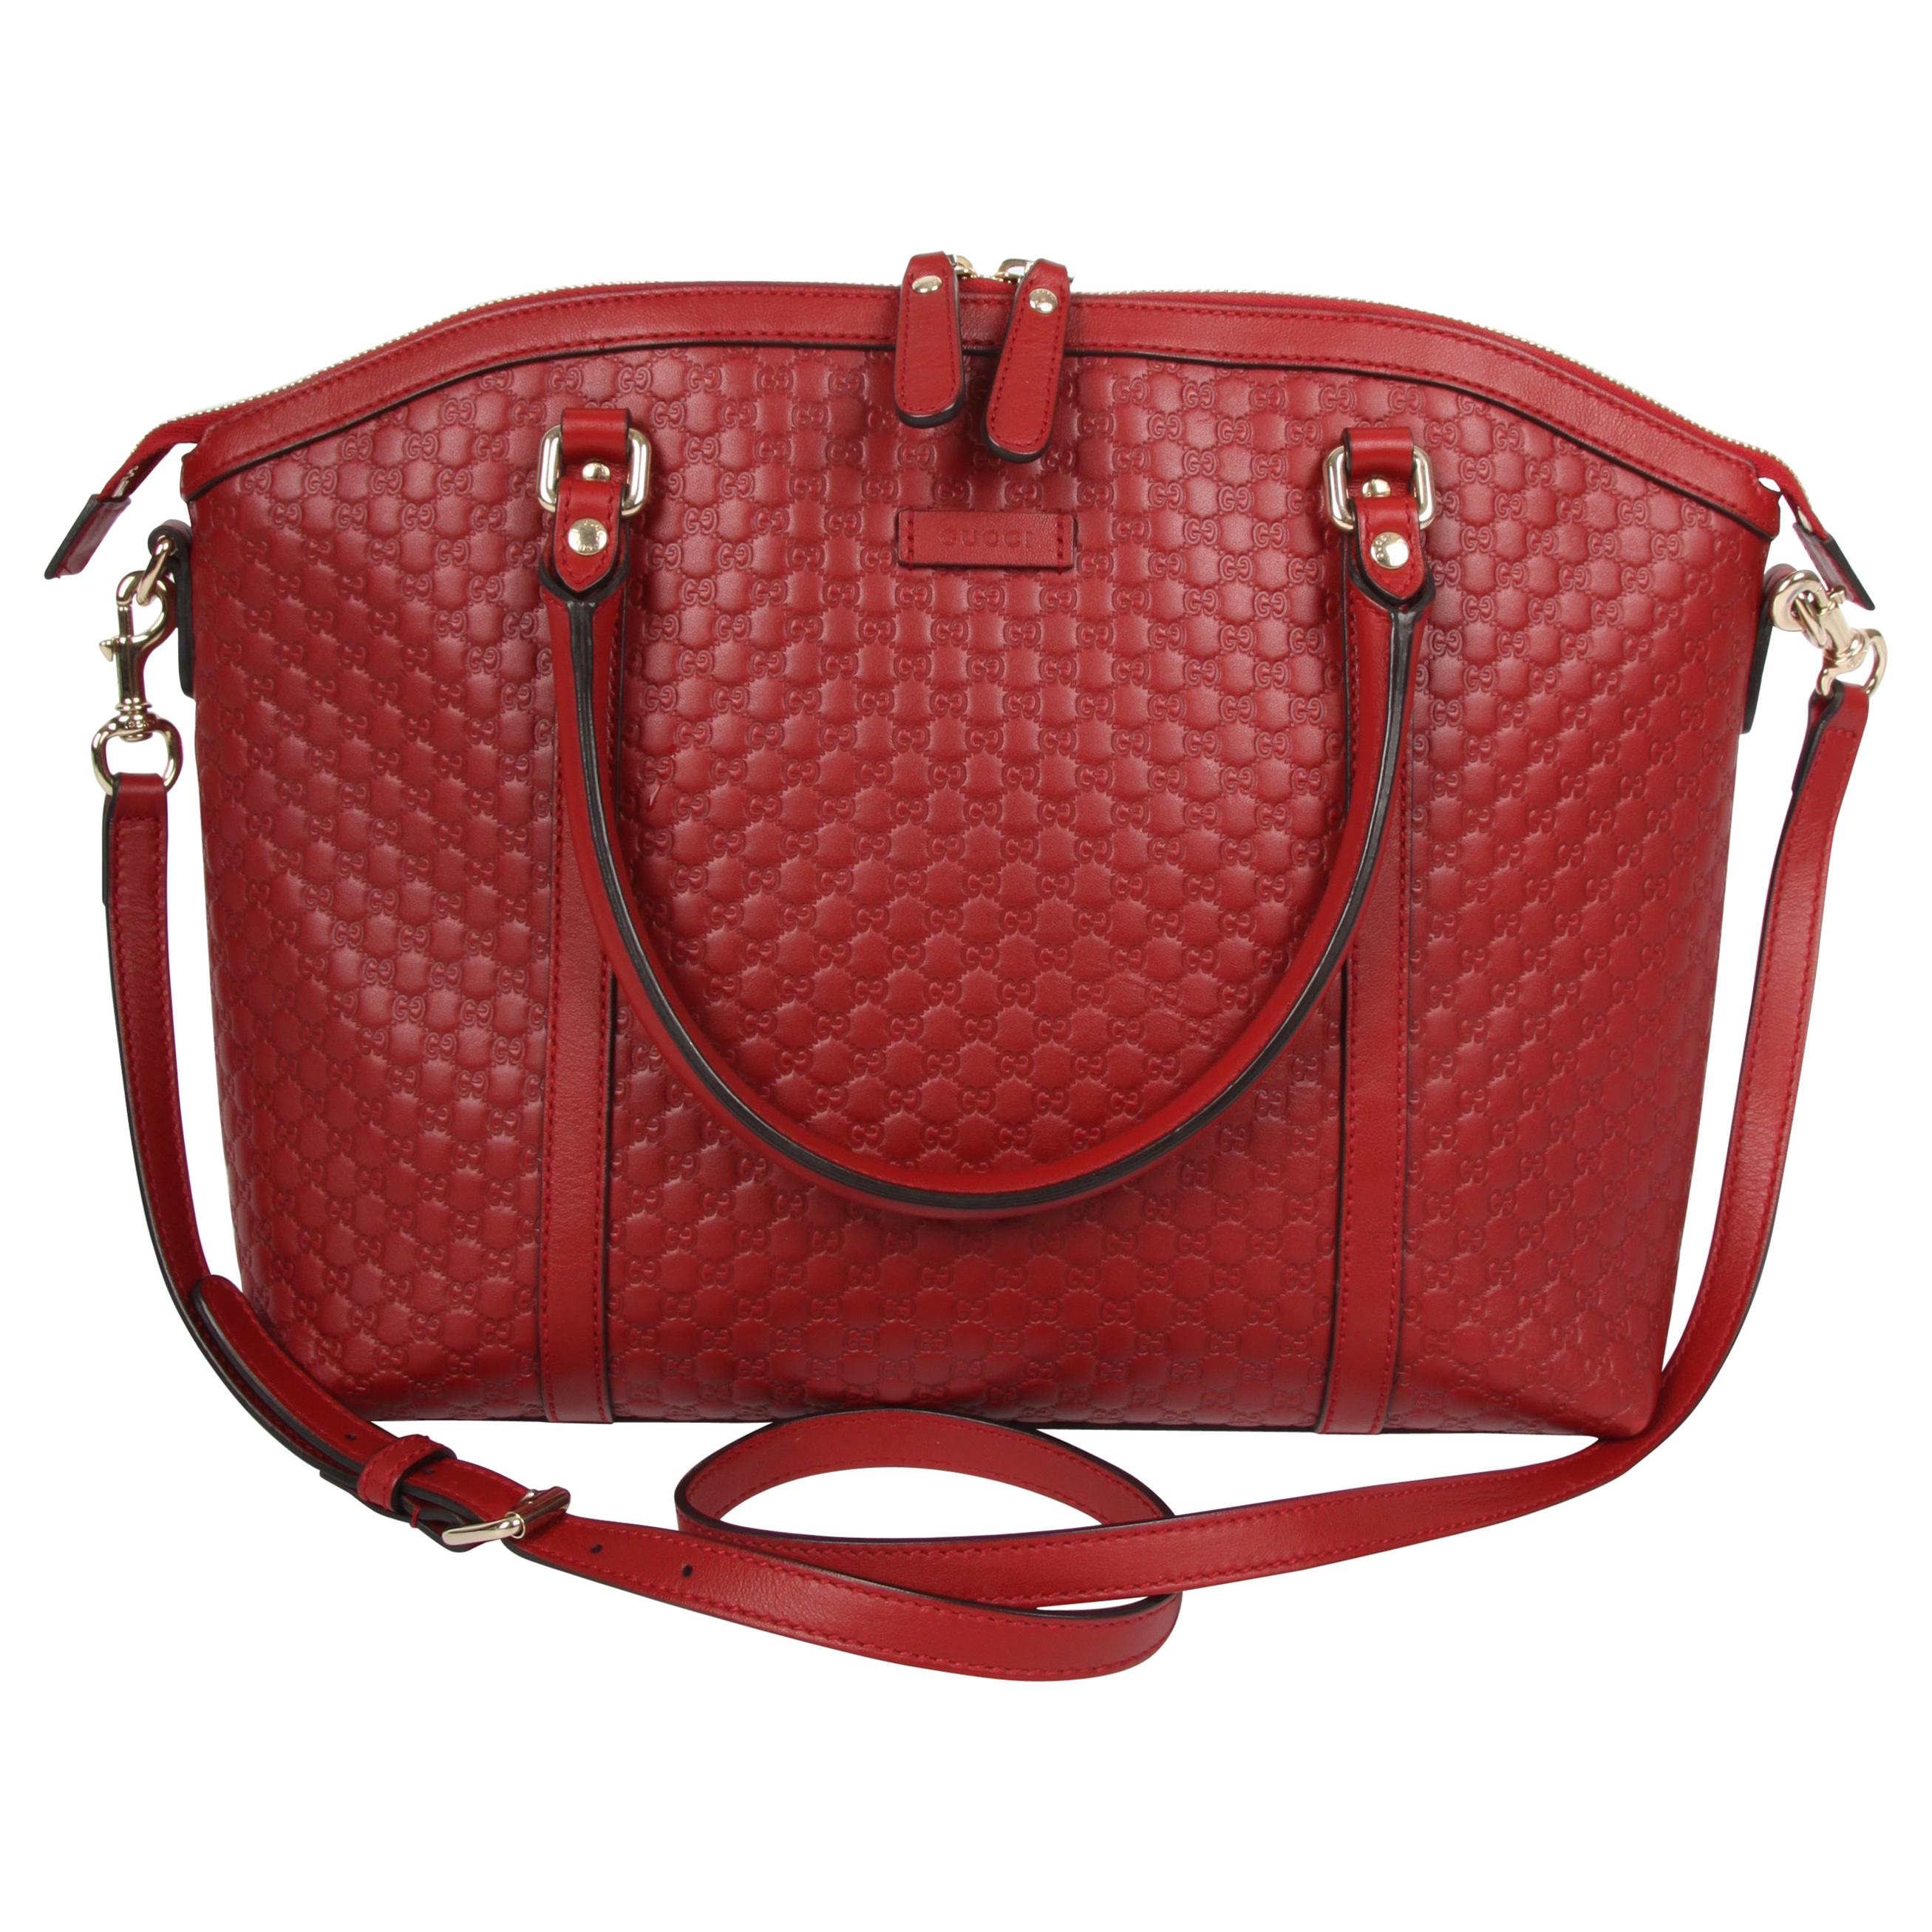 200934a50bf3 Gucci Dome Micro Guccissima bag For Sale at 1stdibs